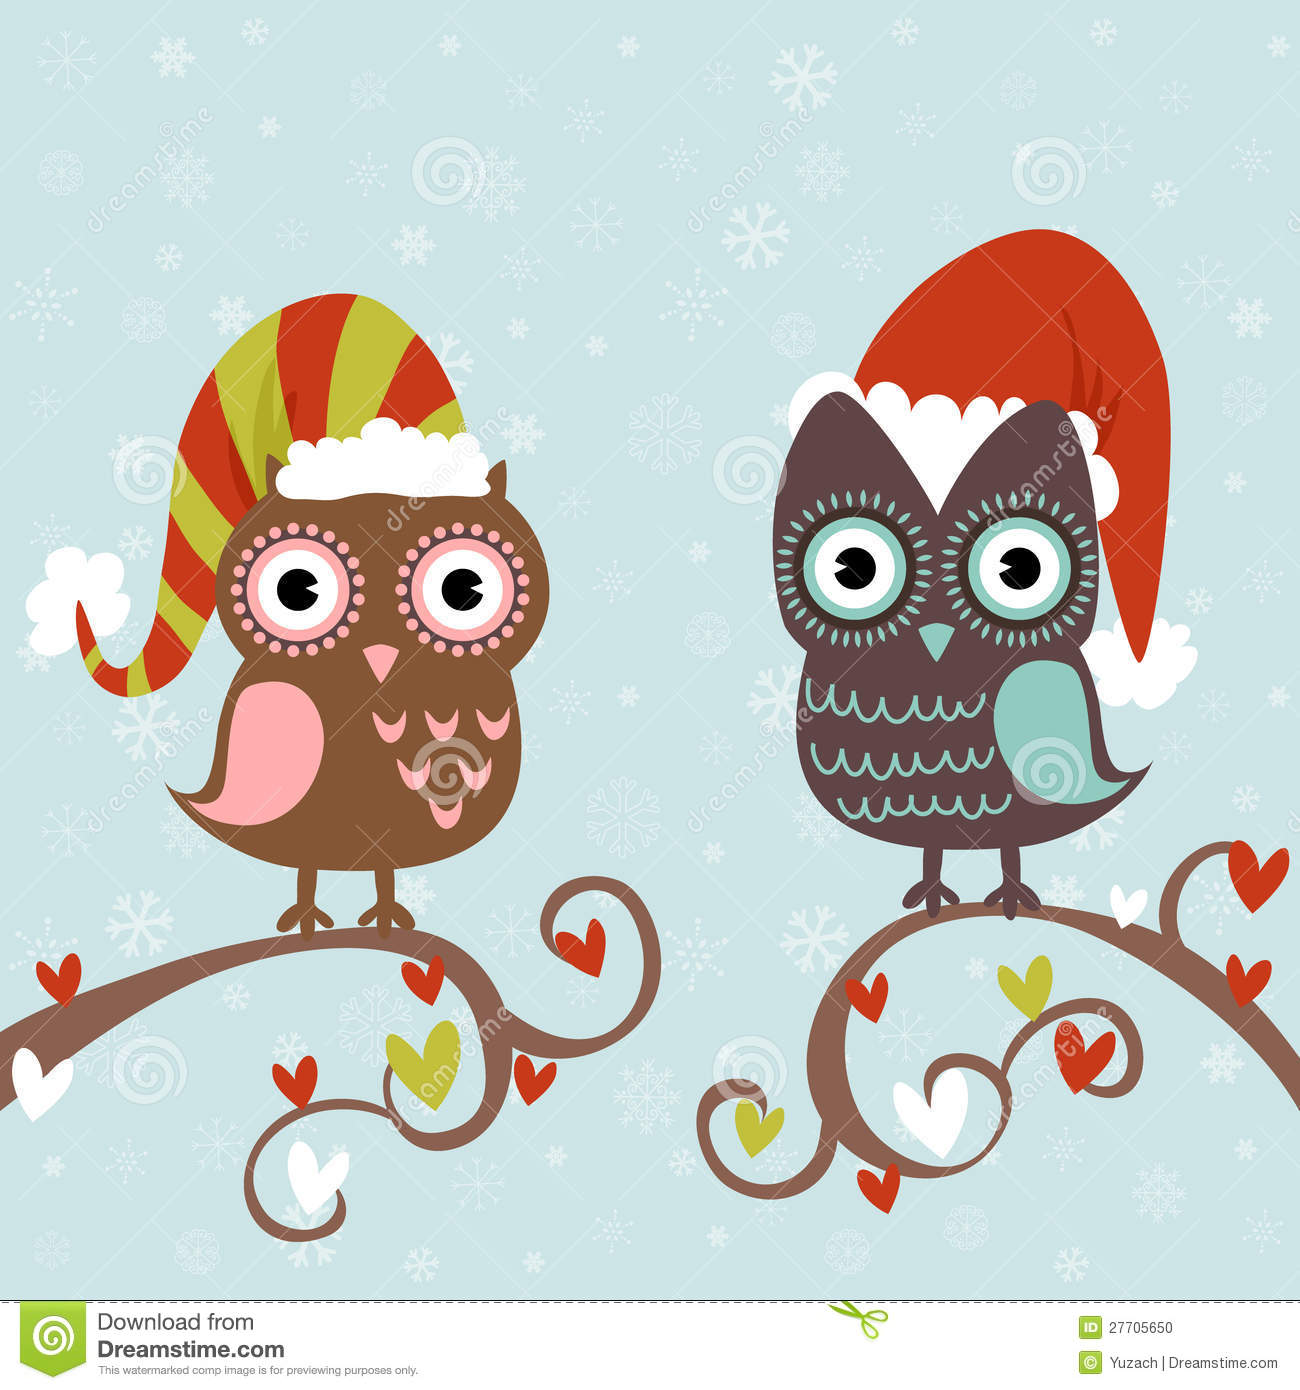 Christmas Card Of Owls In Hats Stock Vector - Illustration ...